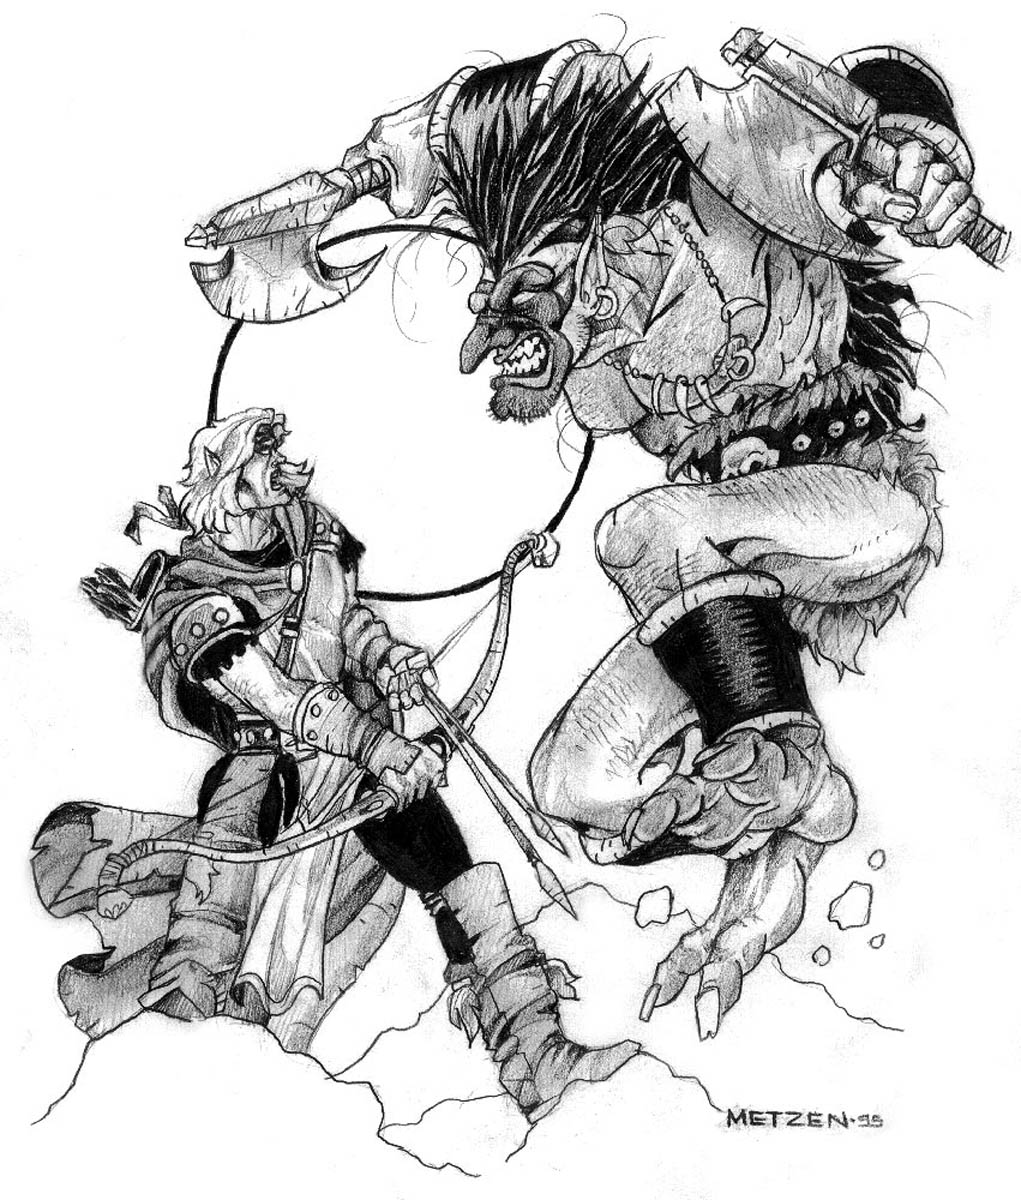 Warcraft Ii Tides Of Darkness 1995 Promotional Art Mobygames